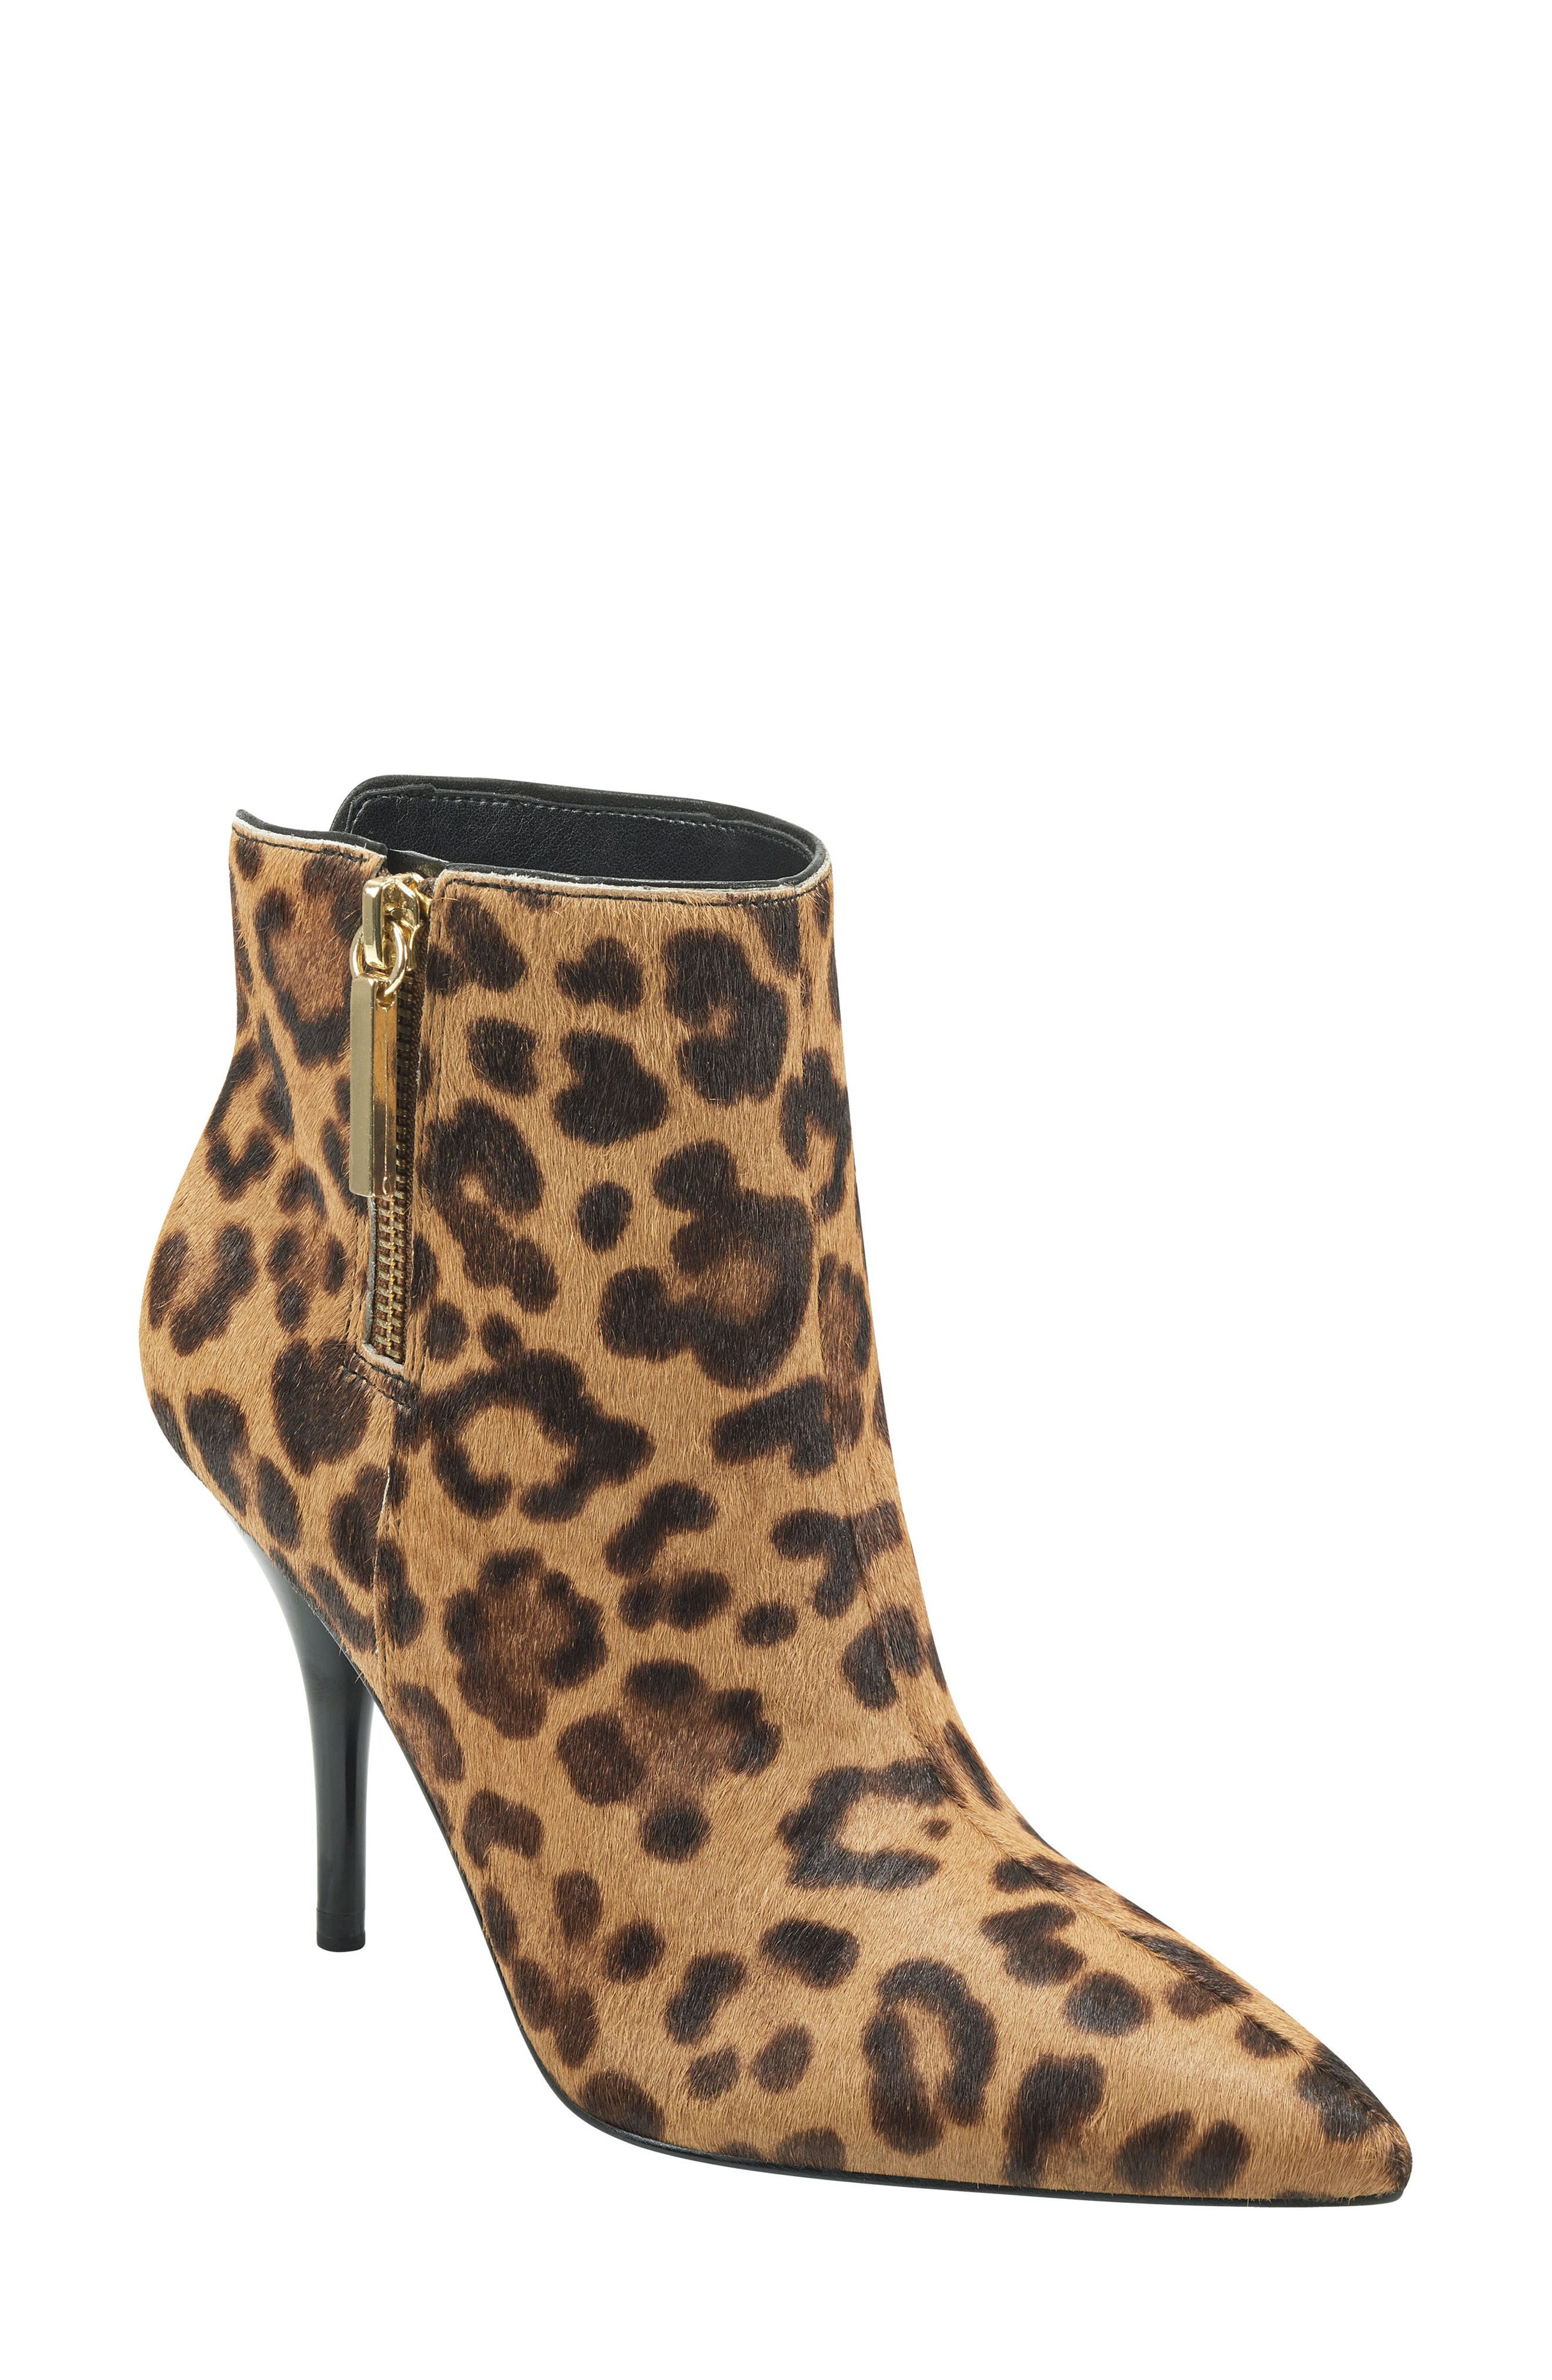 Image of Marc Fisher LTD Fayley Genuine Calf Hair Bootie